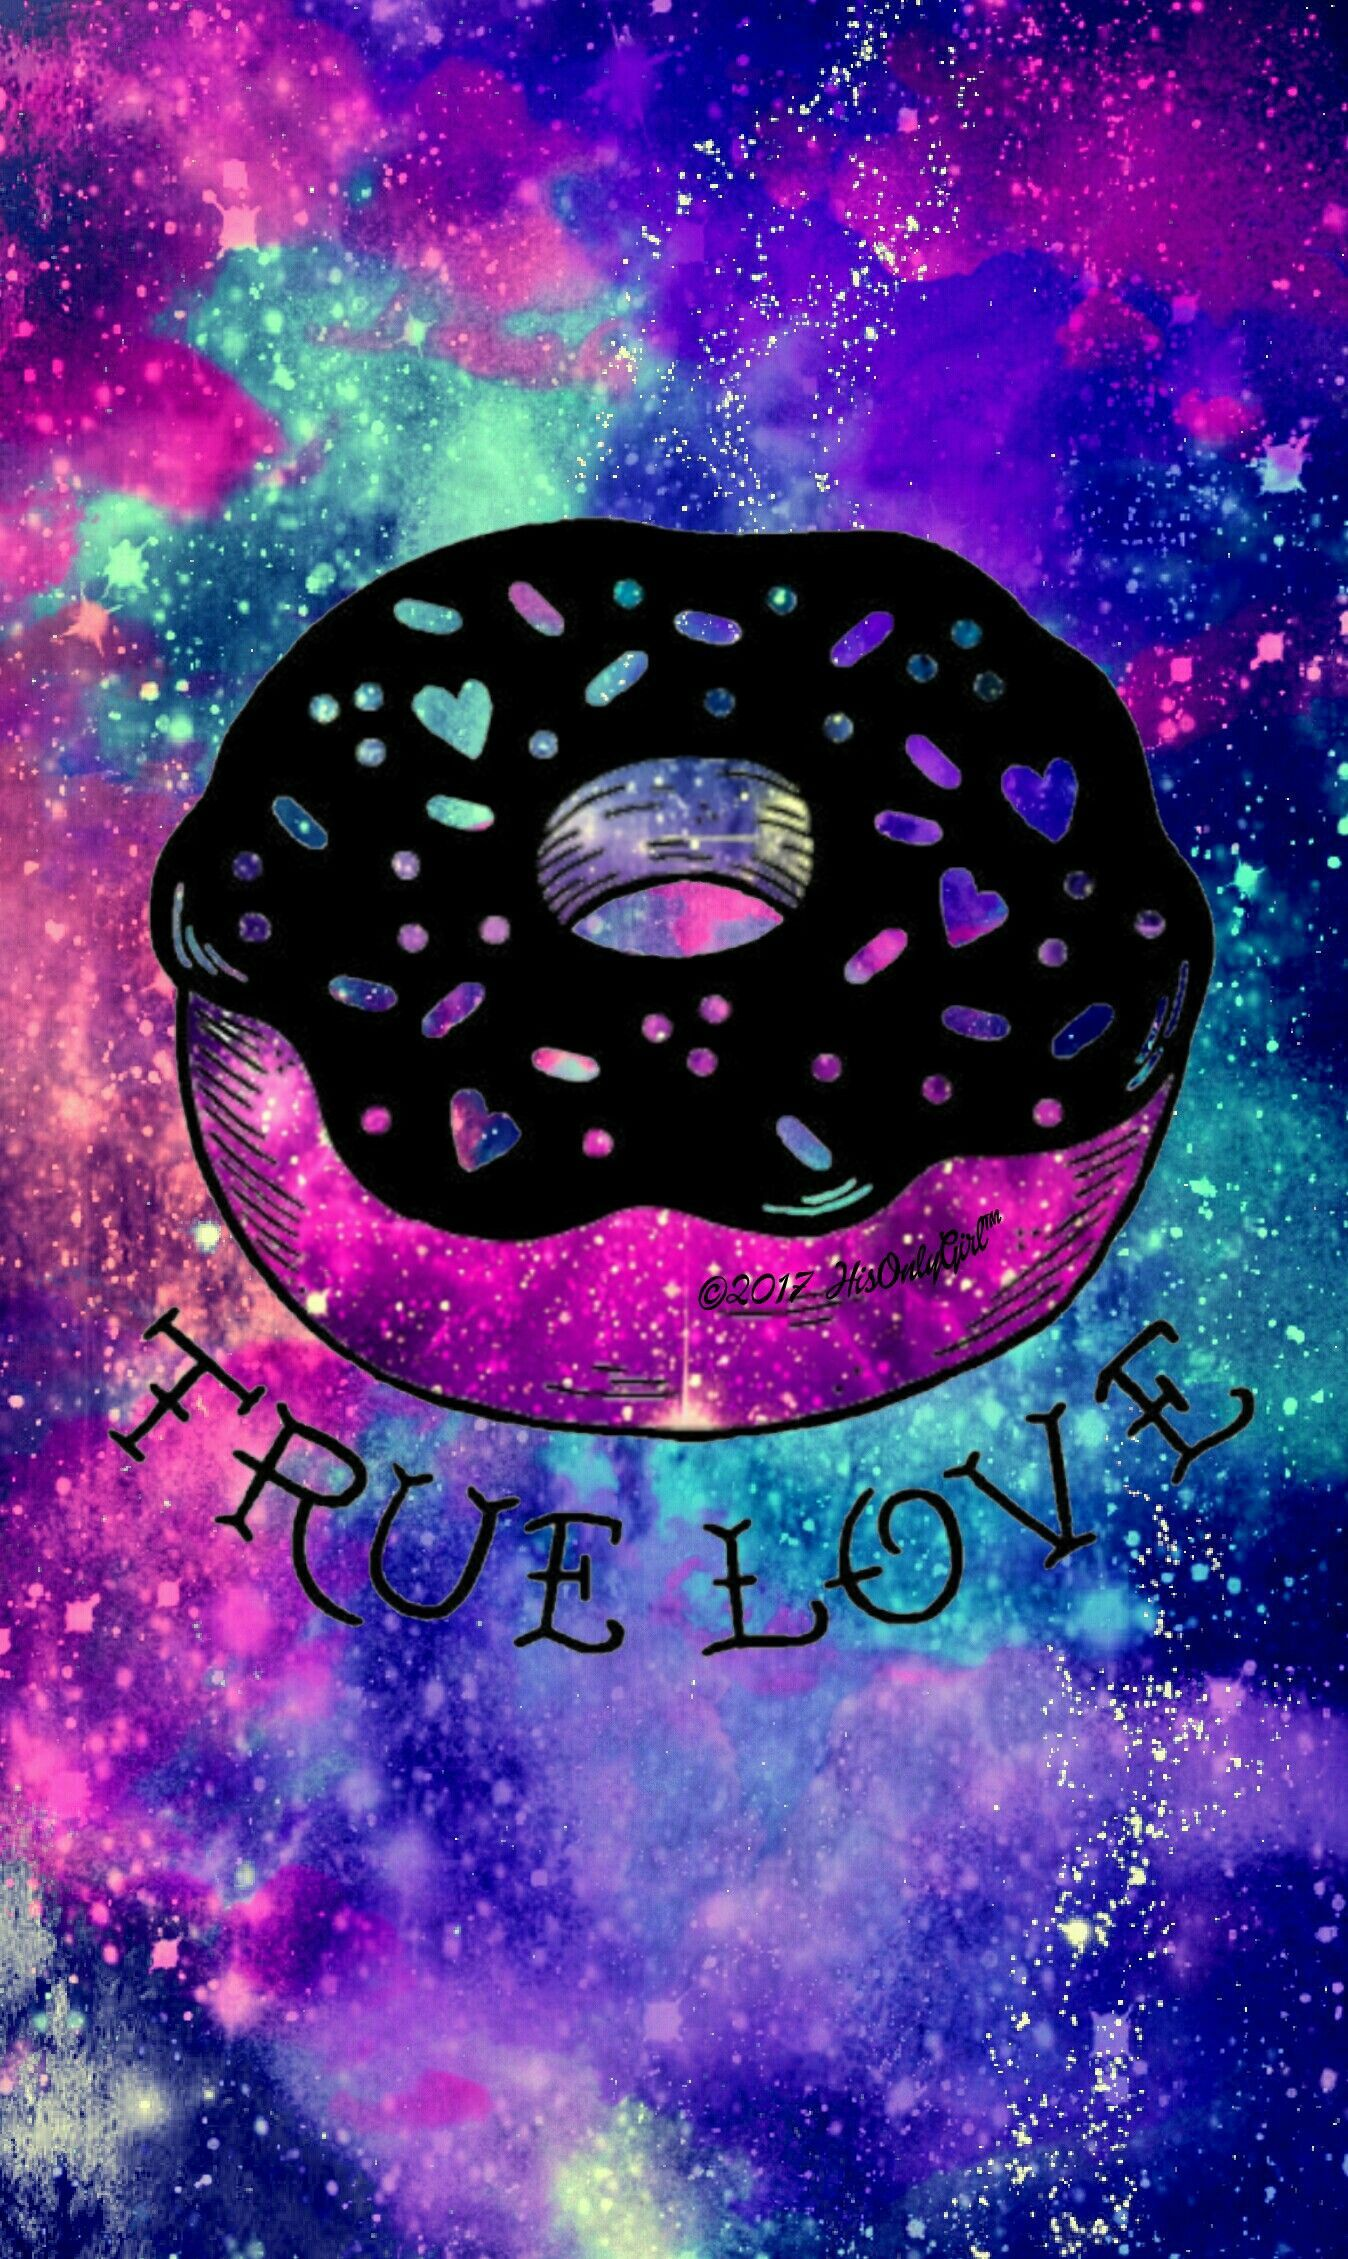 1348x2259 True love donut galaxy wallpaper I created for the app ...